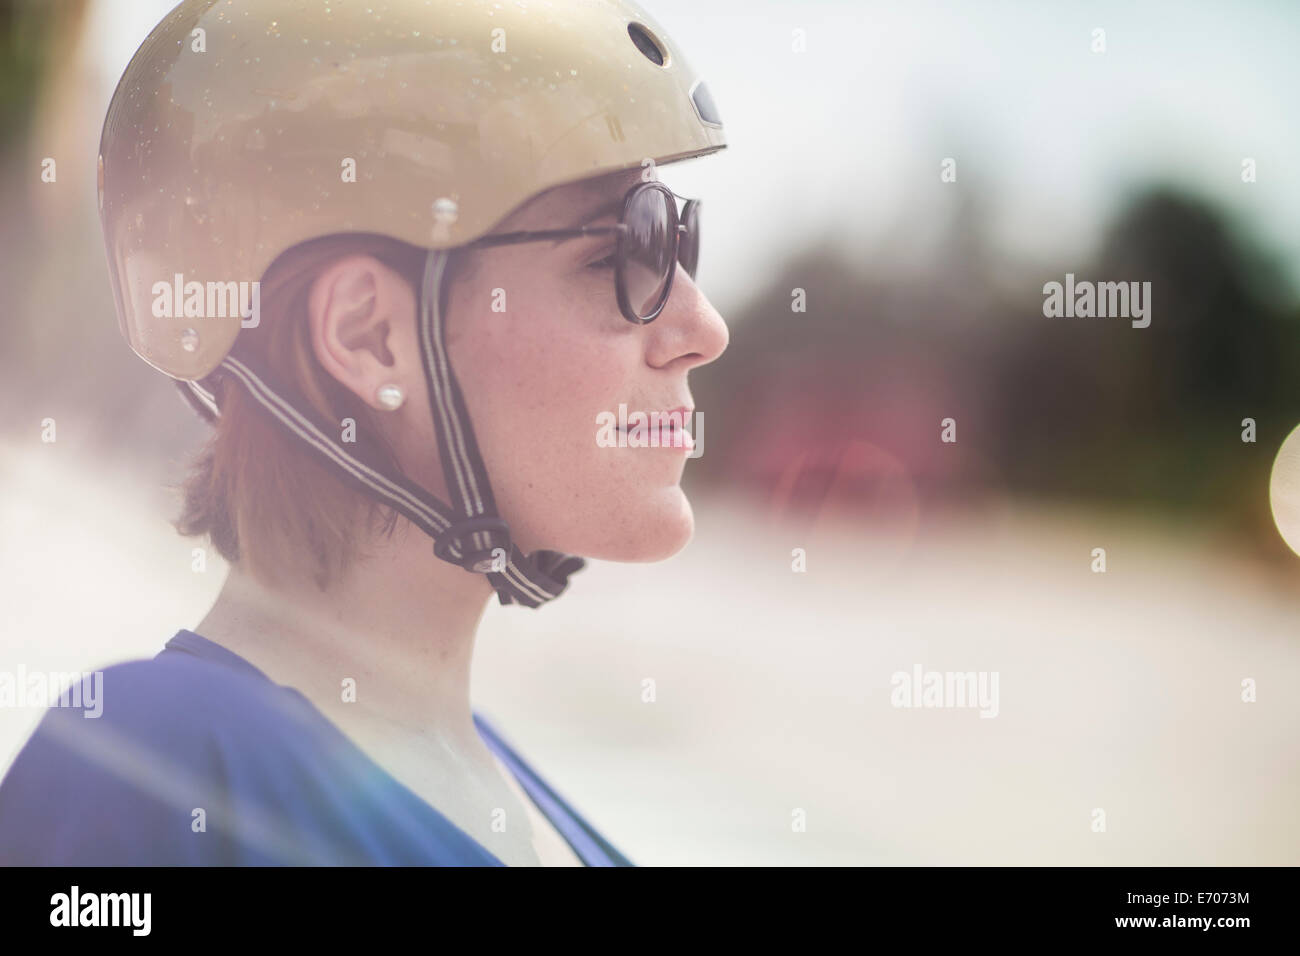 Close up of mid adult woman cyclist wearing cycle helmet and sunglasses - Stock Image